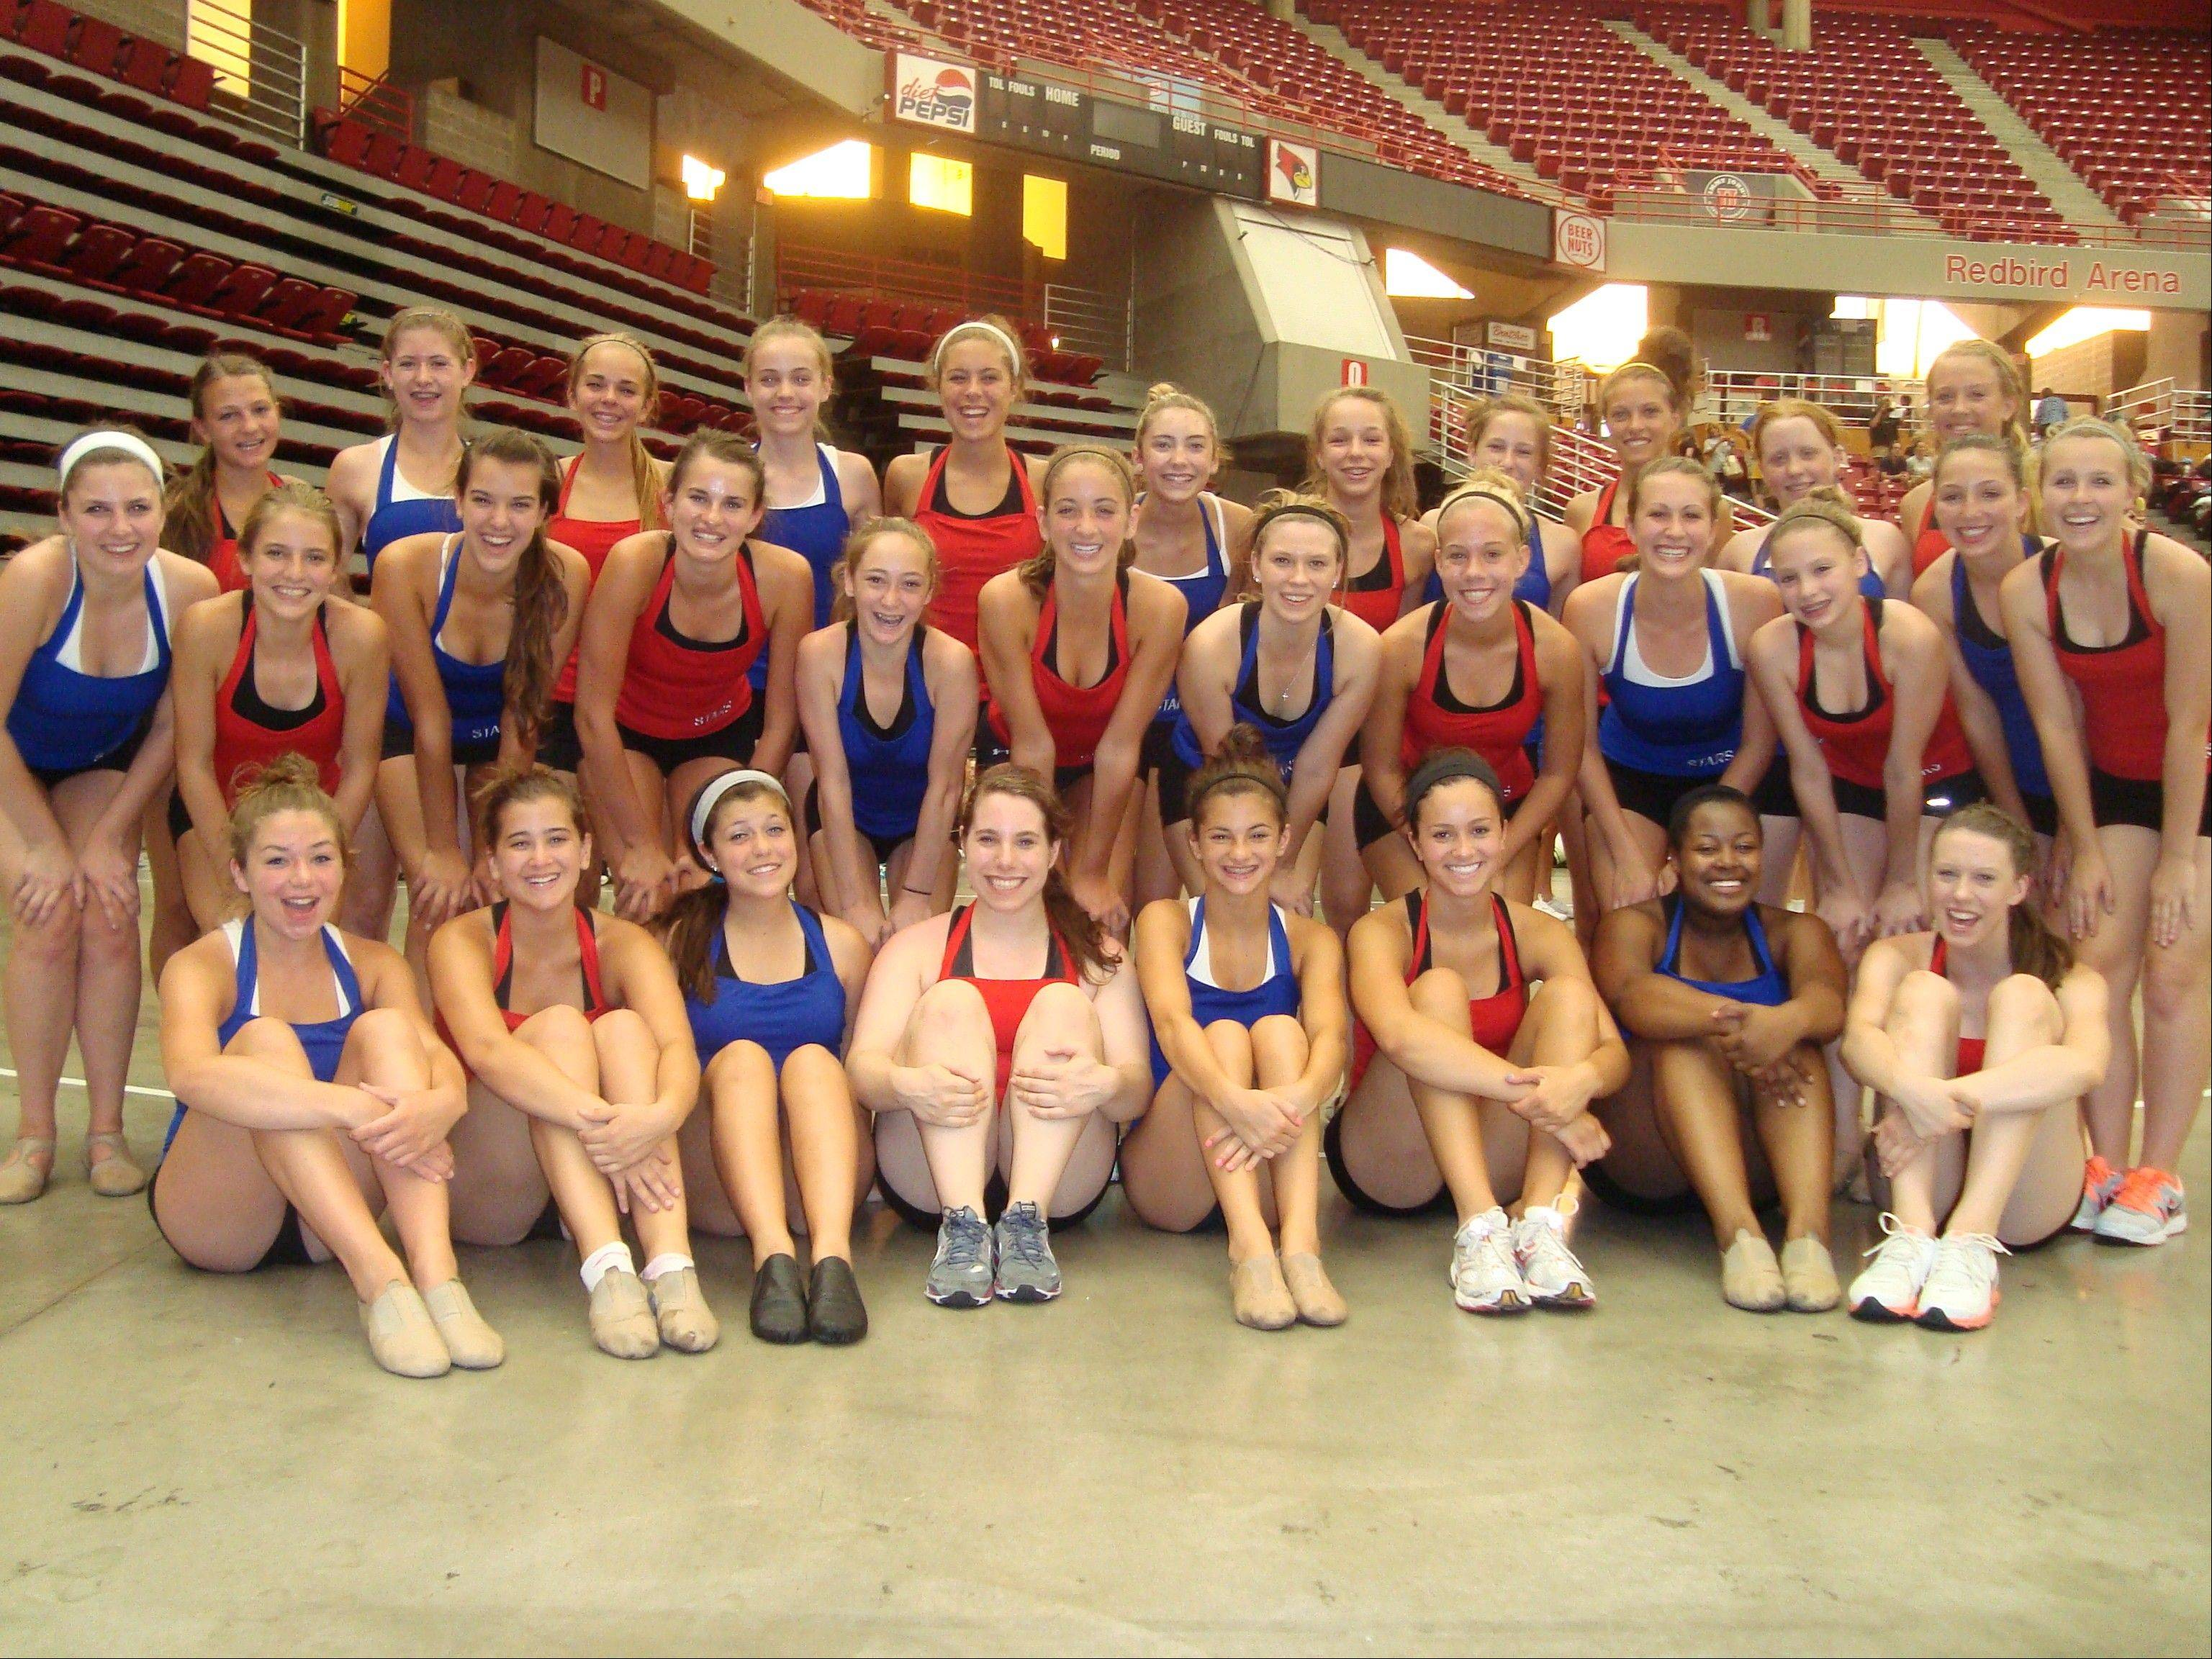 The St. Charles North varsity and junior varsity drill teams recently competed with teams across the country at the Universal Dance Association camp. The team includes, first row, from left, Hanna Dennis, MaryKate Purcell, Julia Arroyo, Allie Isabelli, Ally Hursh, Monique Perdue, Eleisse Pettigrew, and Jamie Beaulieu; middle row, Lexi Artman, Quinn Samanic, Kaleigh Bull, Michelle Vezina, Anna Marie Vivirito, Lindsey Niemann, Nikki Arnold, Megan Spaniol, Kassi Ams, Isabel Miller, Lexi Zocher, and Lindsey Wehking; and back row, Colleen Lullo, Anna Spense, Rachel Zima, Brittany Allen, Alexa Cunningham, Taylor Hoekstra, Audra Stapella, Shelby Kronke, Allyssa Arroyo, Bailey Moberly and Alison Meisenheimer.